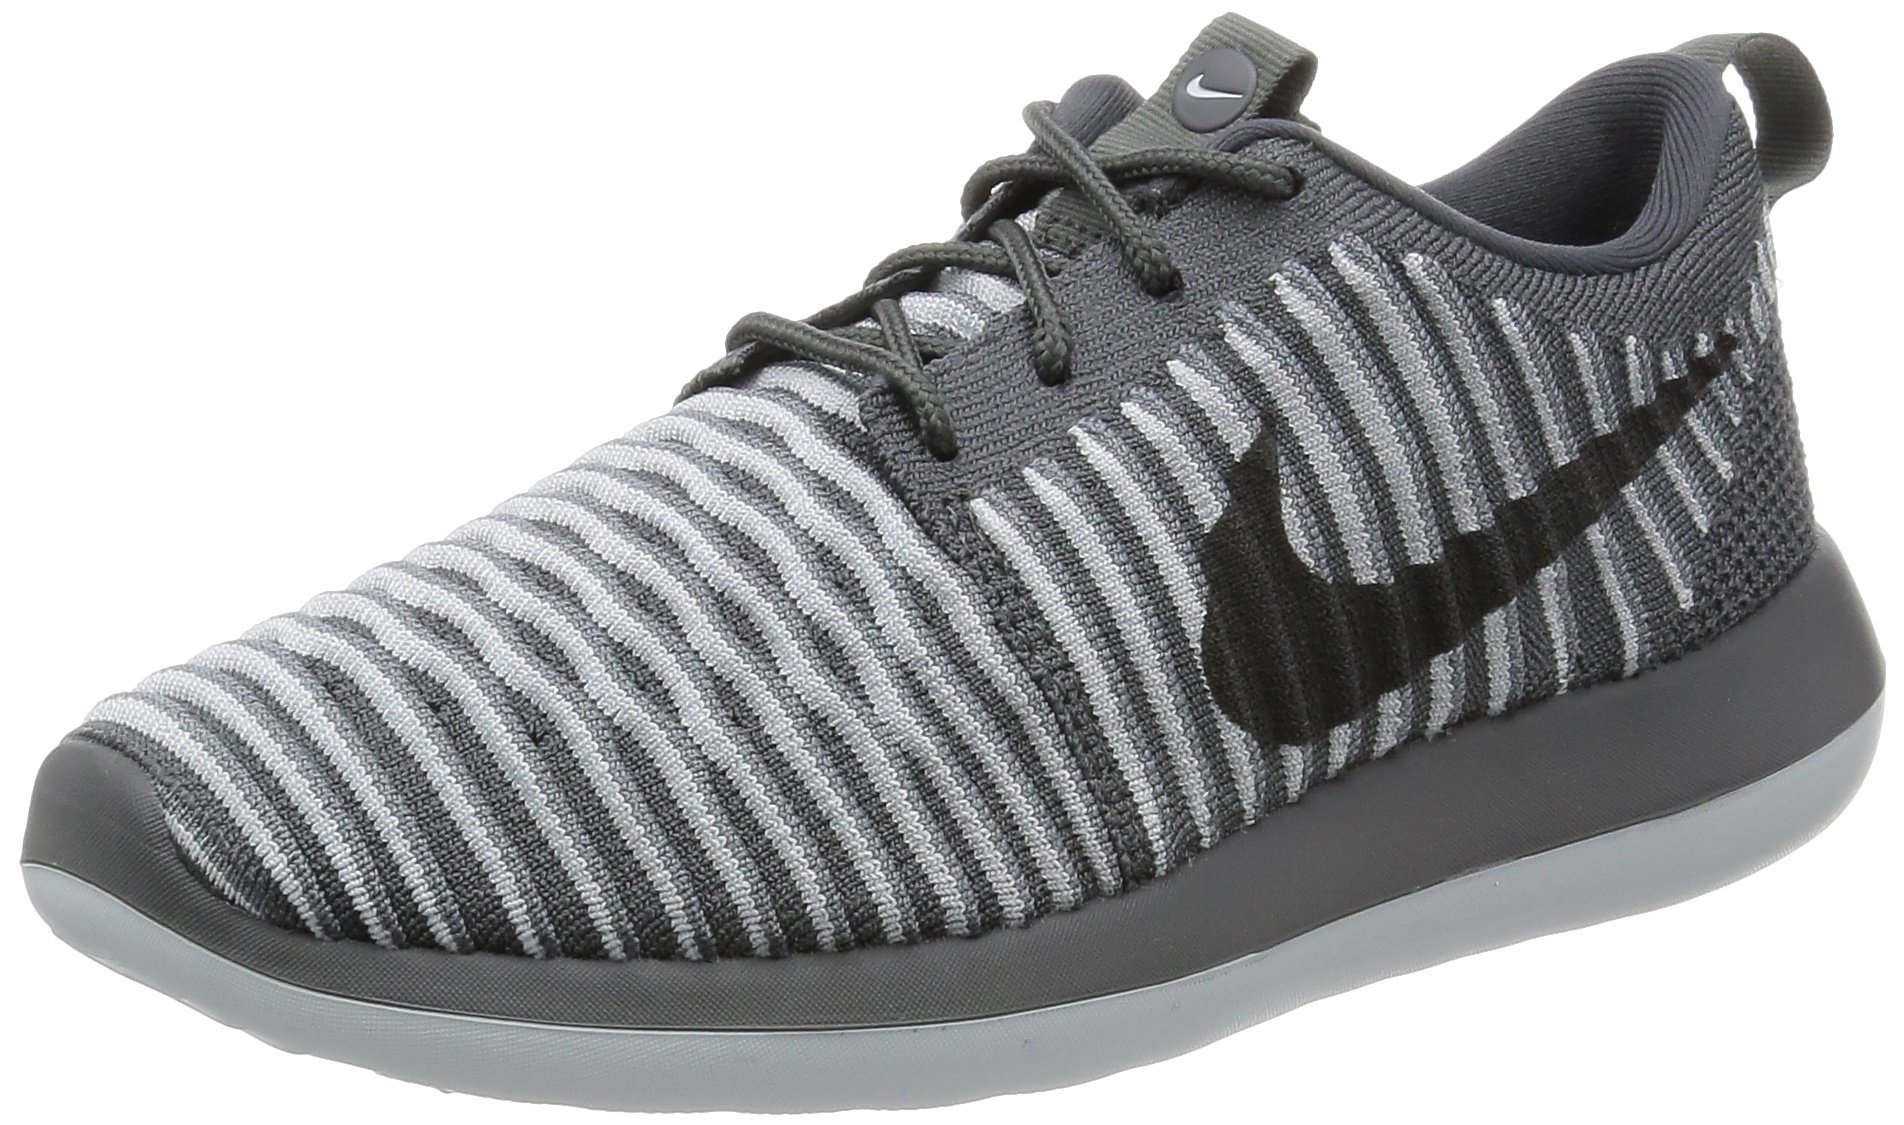 081a4cb32fe0 Galleon - NIKE Women s Roshe Two Flyknit V2 Running Shoe (9 B(M) US ...